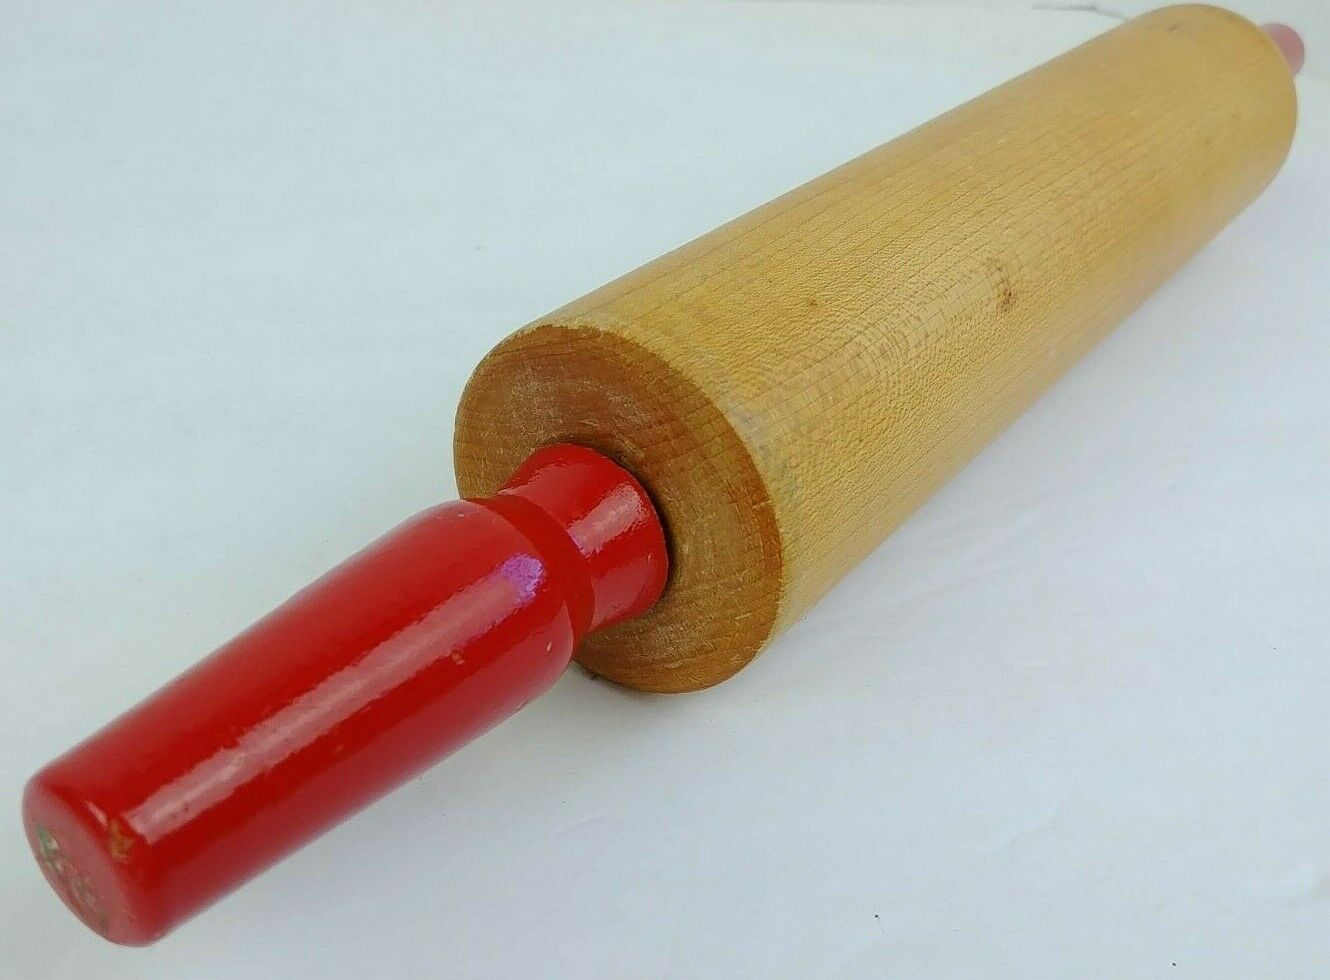 Wood Rolling Pin Baribo-Maid Maple Rolling Pin made by a division of Baribocraft Baribocraft Rolling Pin Quebec Canada